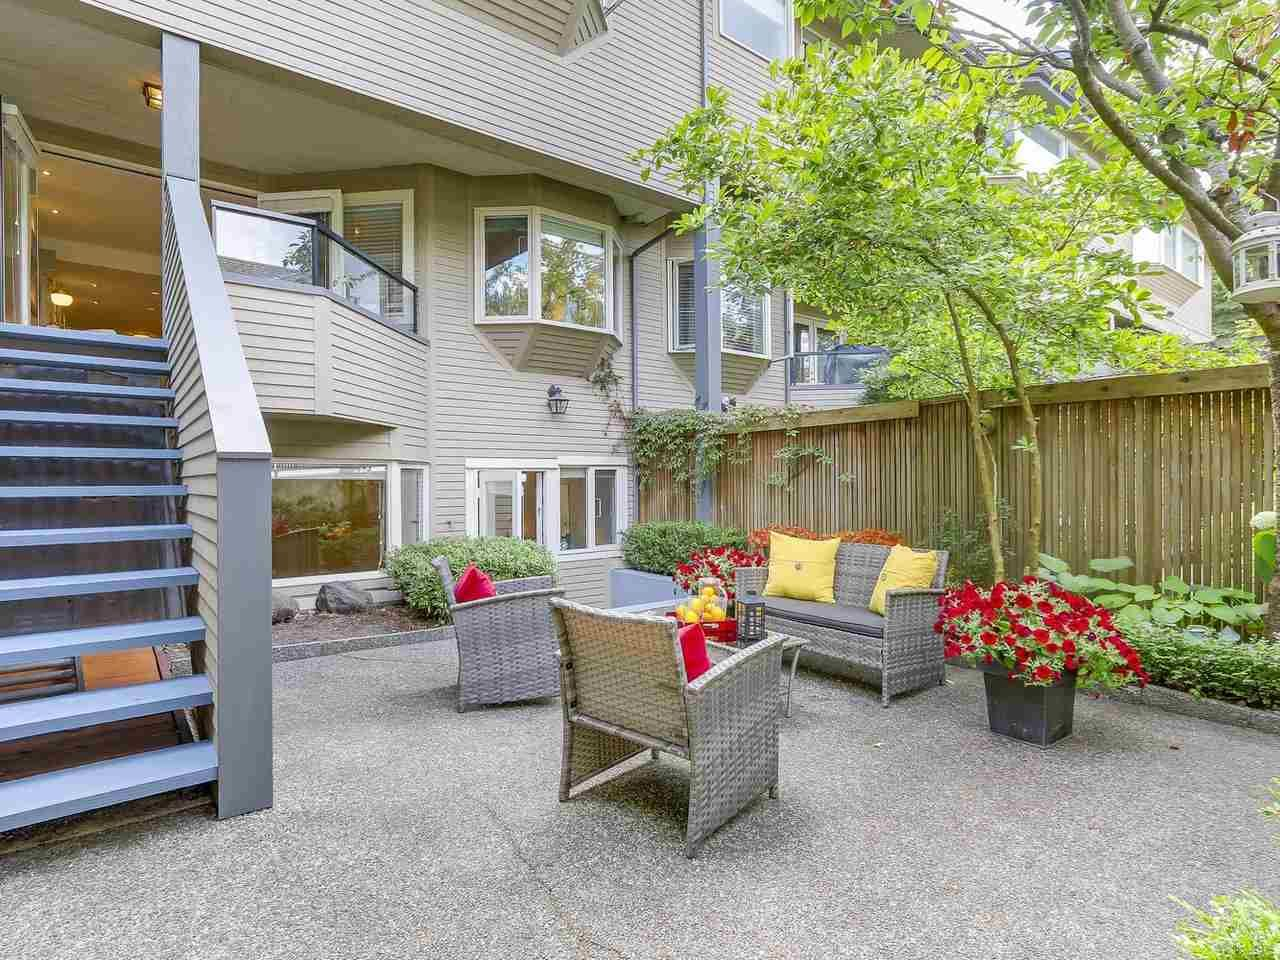 """Main Photo: 2411 W 1ST Avenue in Vancouver: Kitsilano Townhouse for sale in """"Bayside Manor"""" (Vancouver West)  : MLS®# R2191405"""